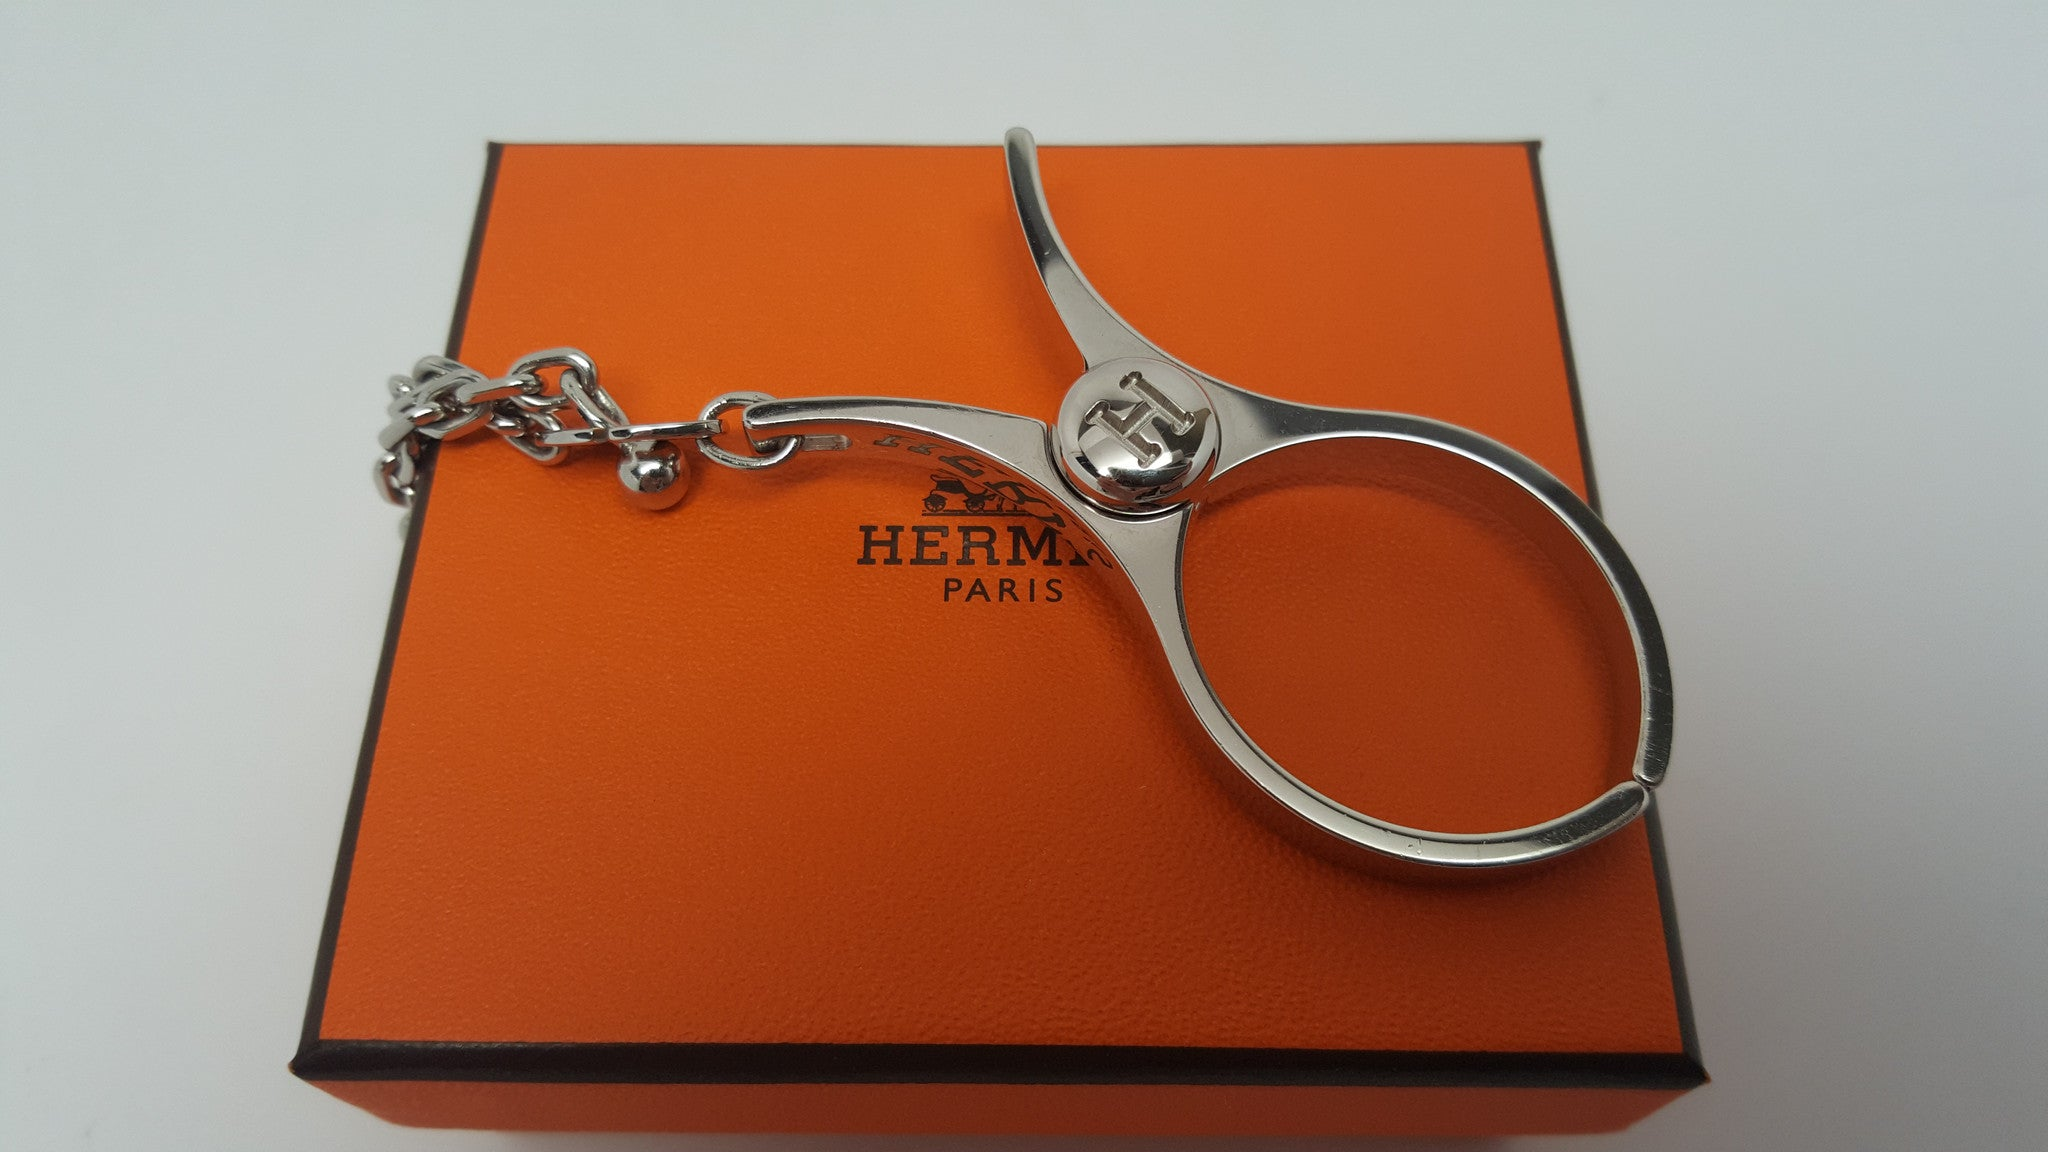 HERMES GLOVE HOLDER CHARM - PALLADIUM HARDWARE